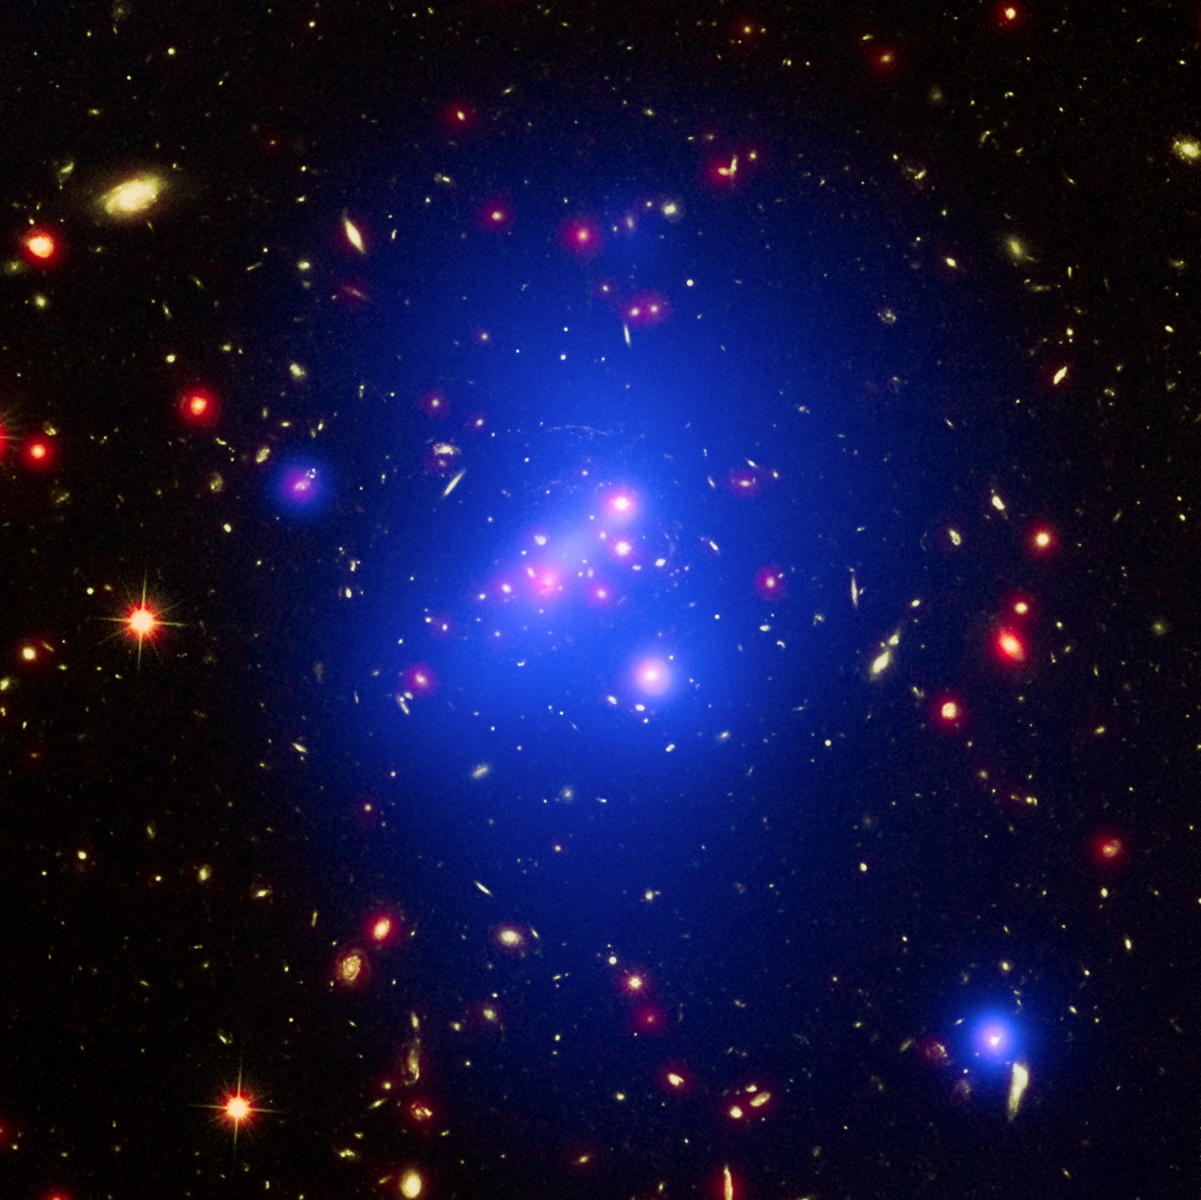 This image of the massive galactic cluster IDCS 1426 combines data taken by three major NASA telescopes. The off-center core of X-rays is shown in blue-white near the middle of the cluster, and was captured by Chandra. Visible light from the Hubble Space Telescope is green, and infrared light from Spitzer is shown in red.